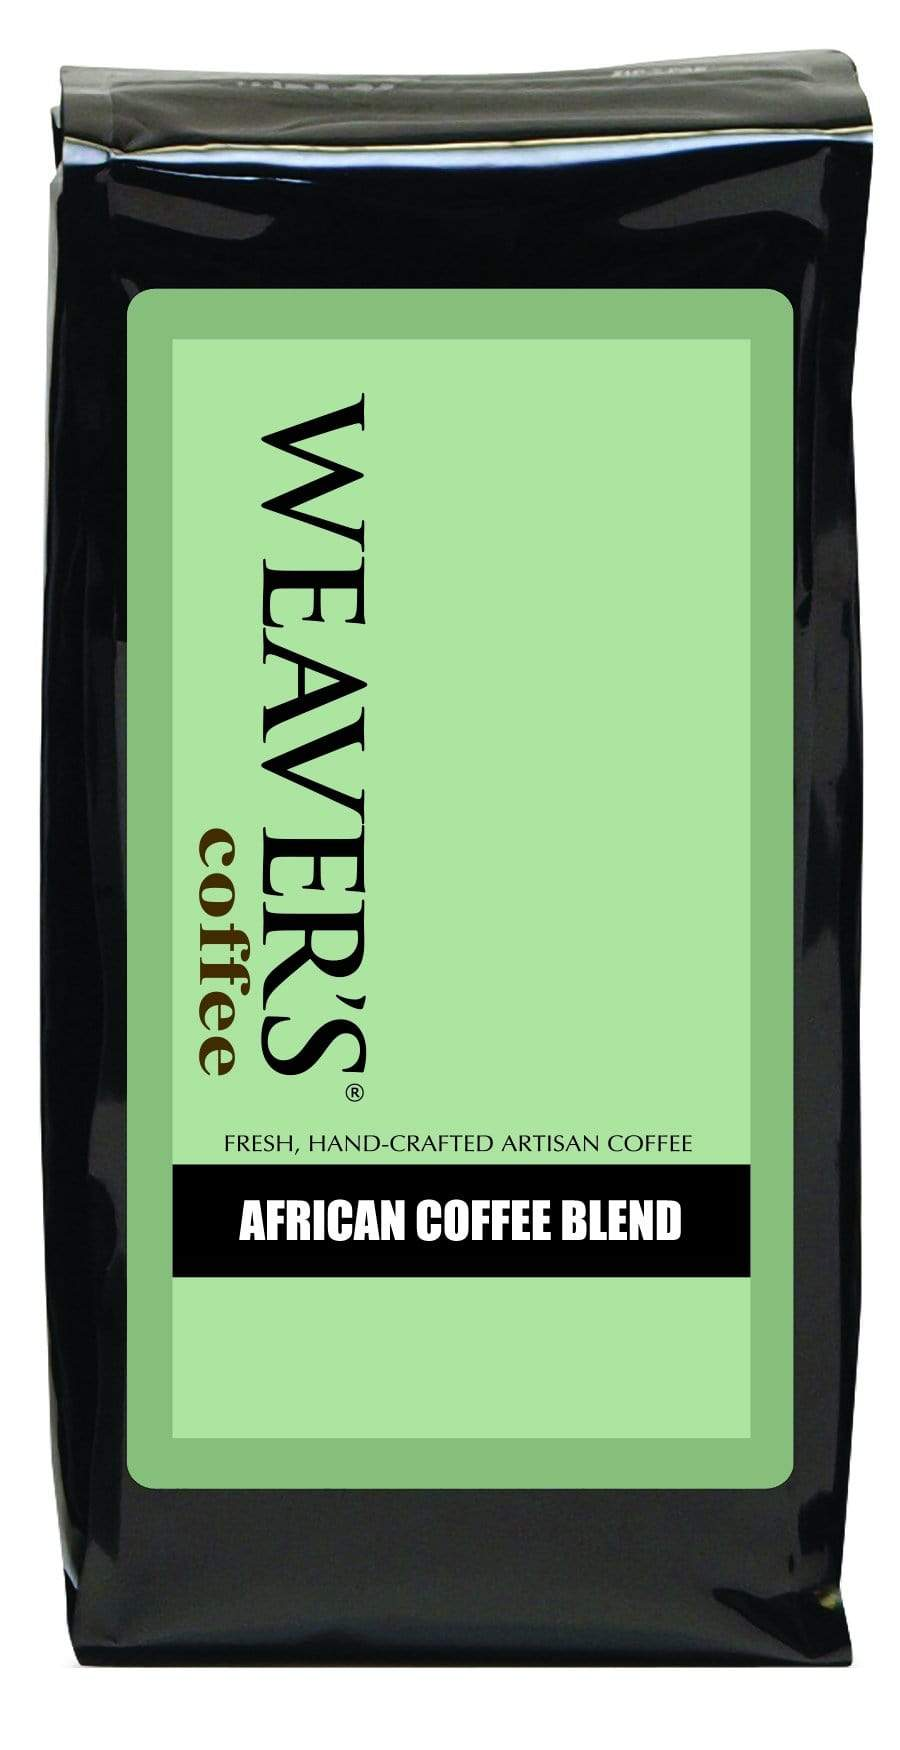 weaverscoffee.com African Coffee Blend